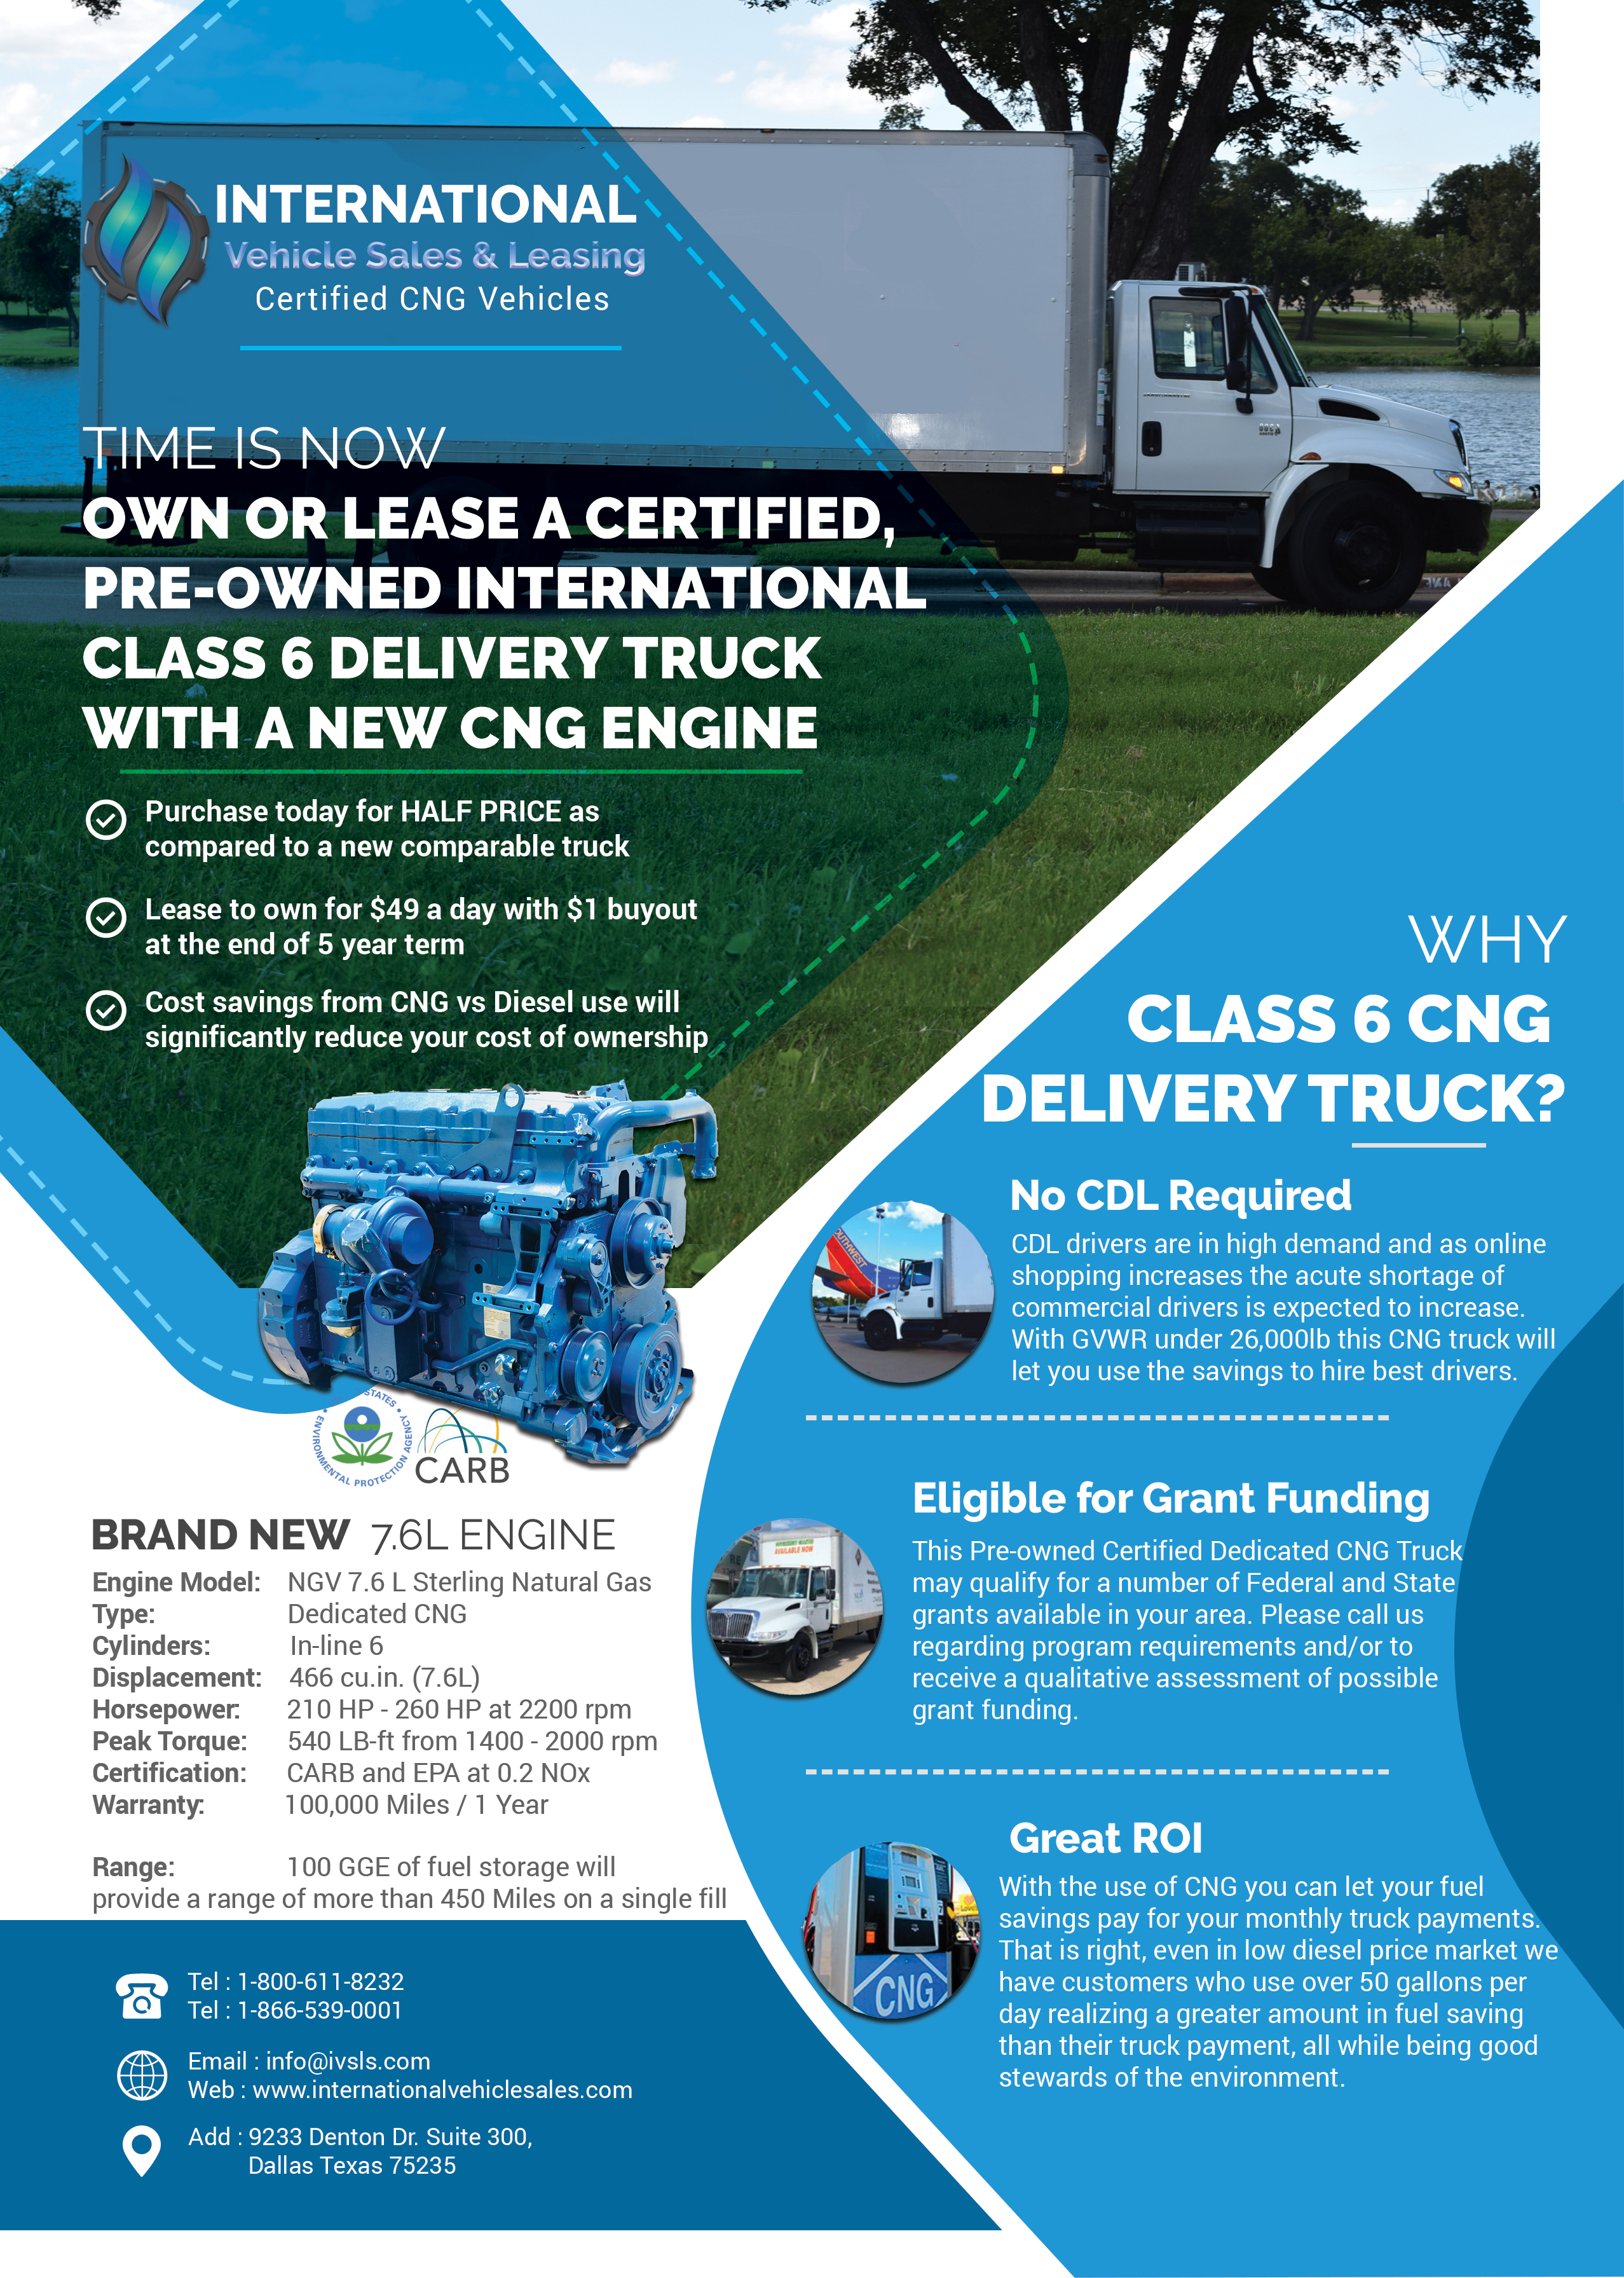 CNG Delivery Truck - CNG truck sales and CNG bus sales